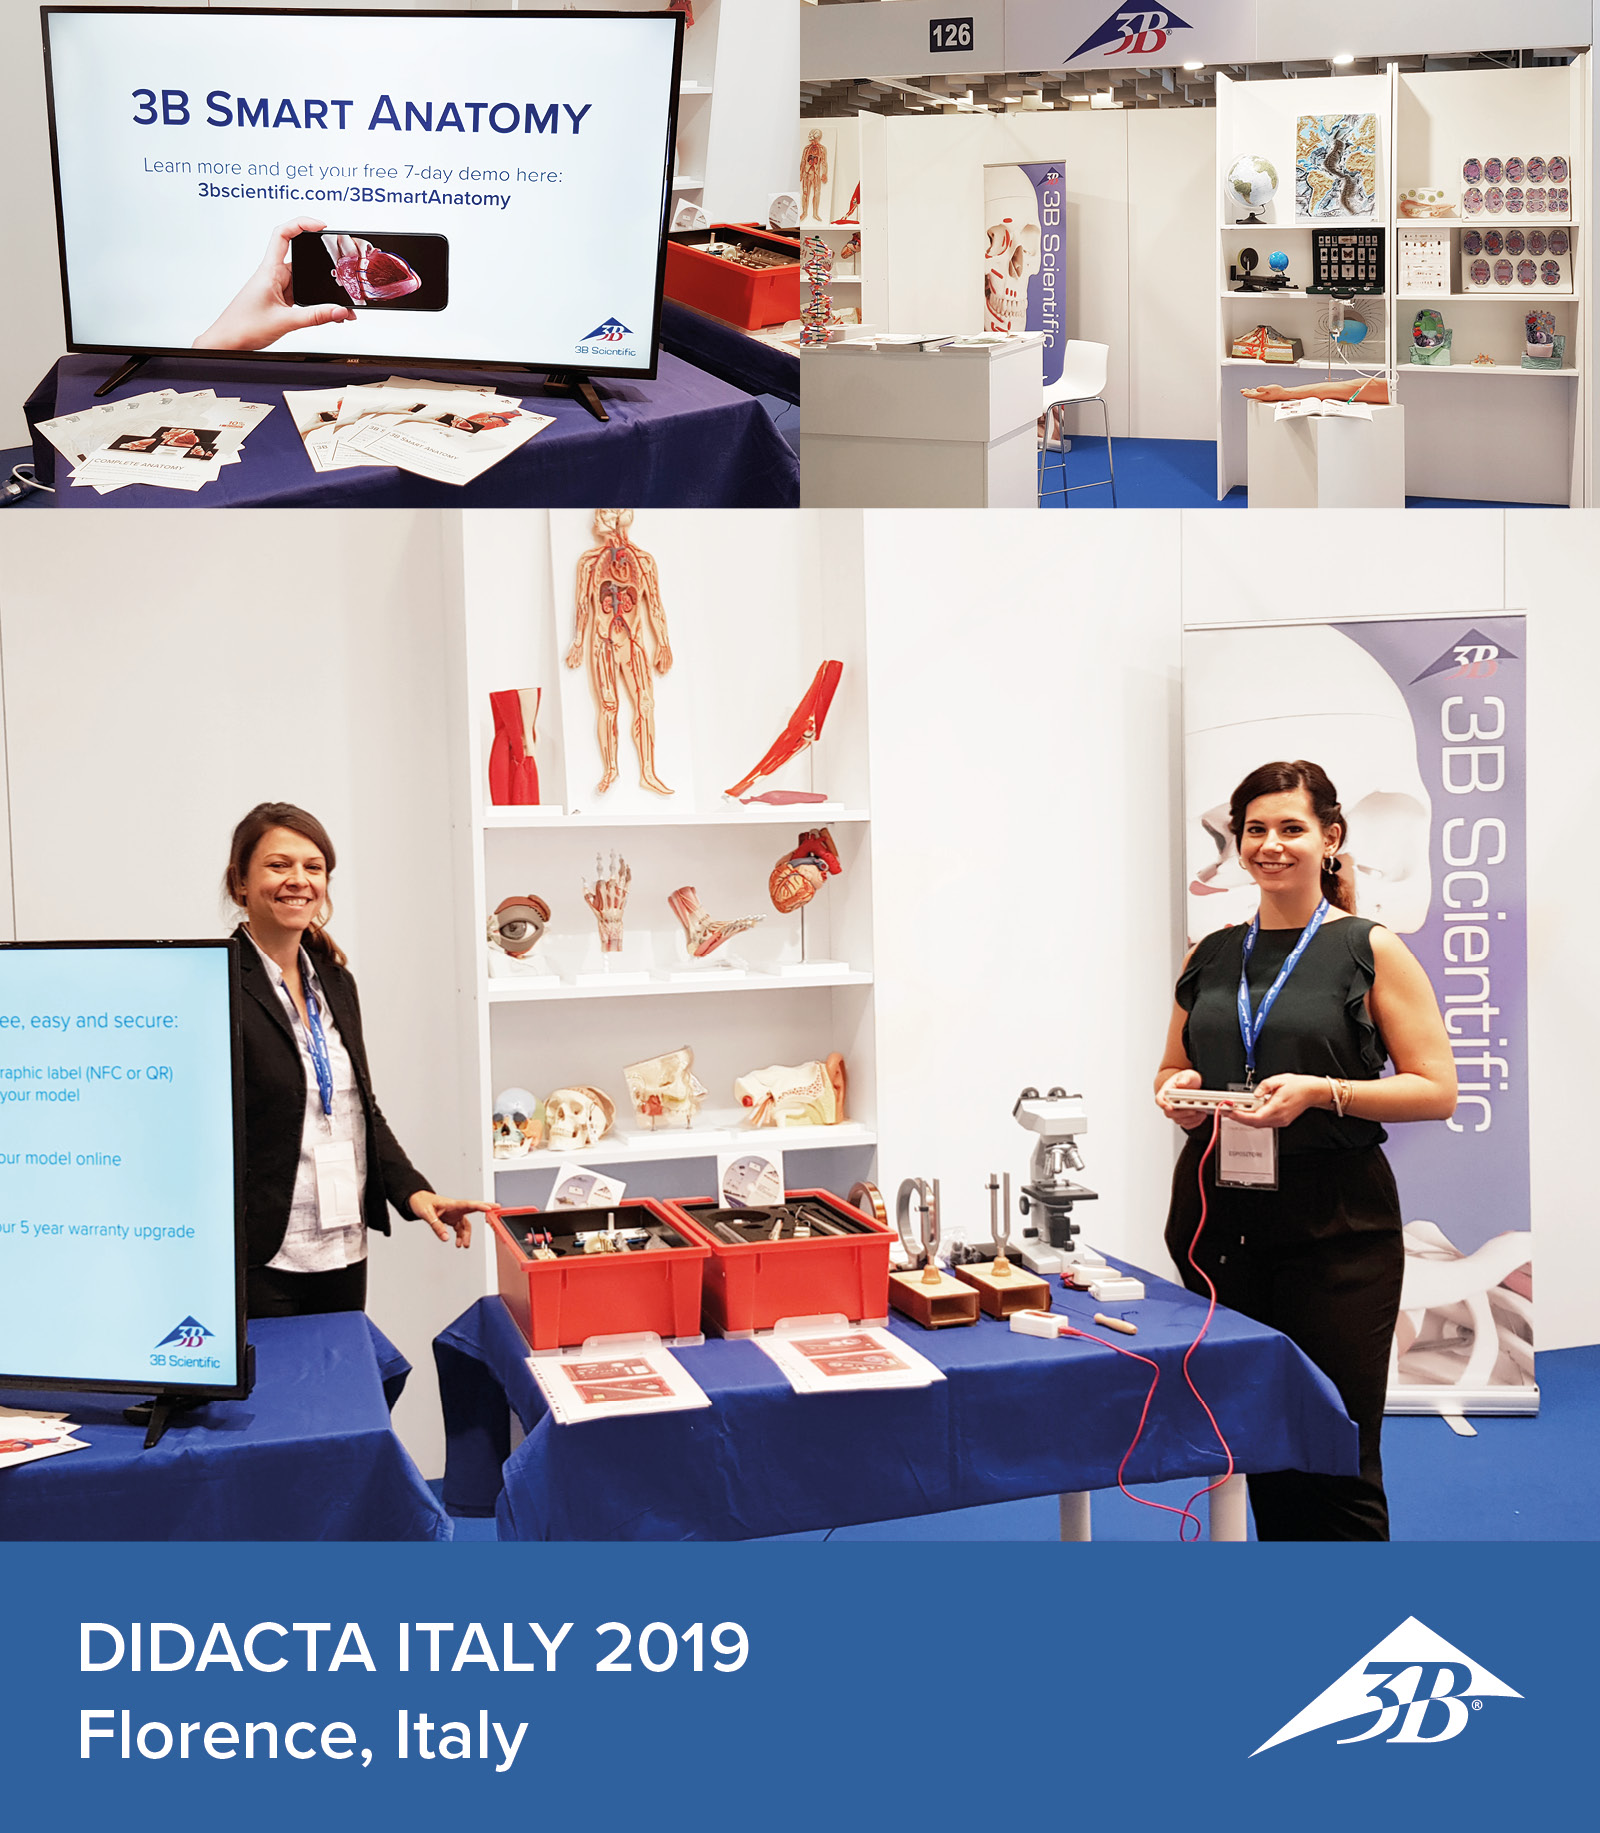 2019_Didacta_Italia_Press_Section_Banner_768x880.jpg